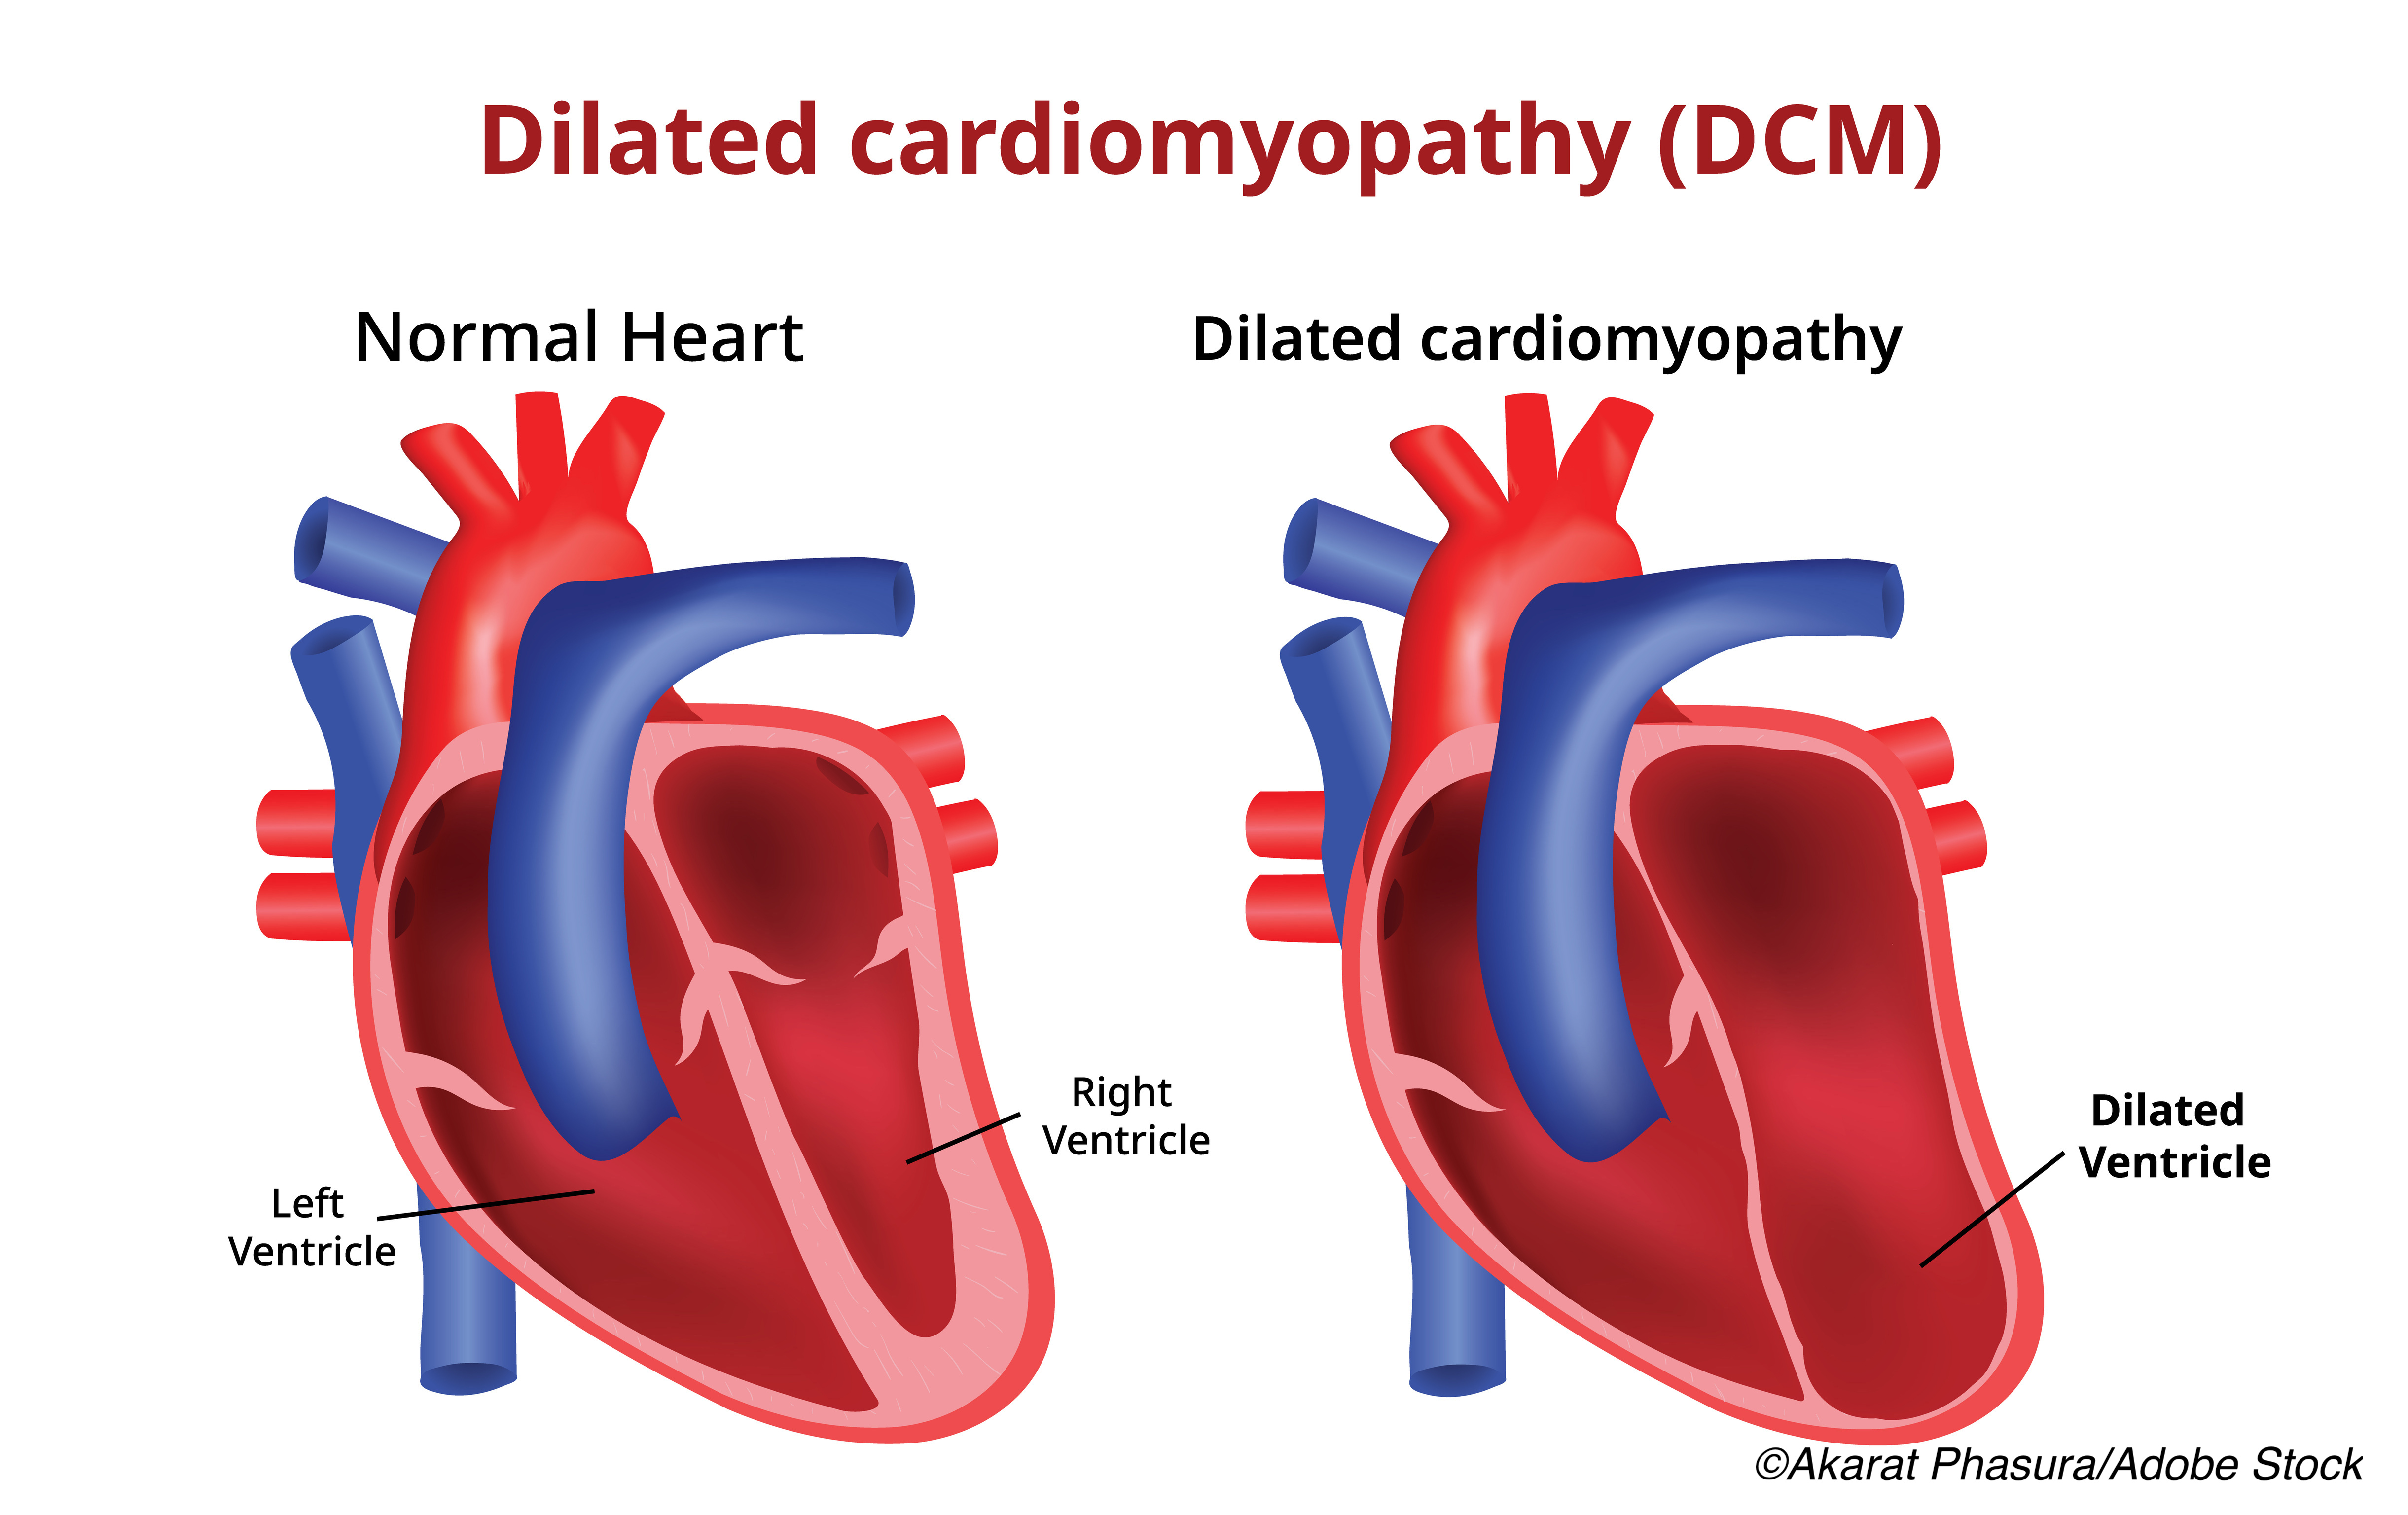 Genetic Profile Refines Risk of SCD in Patients with Left Ventricular Systolic Dysfunction